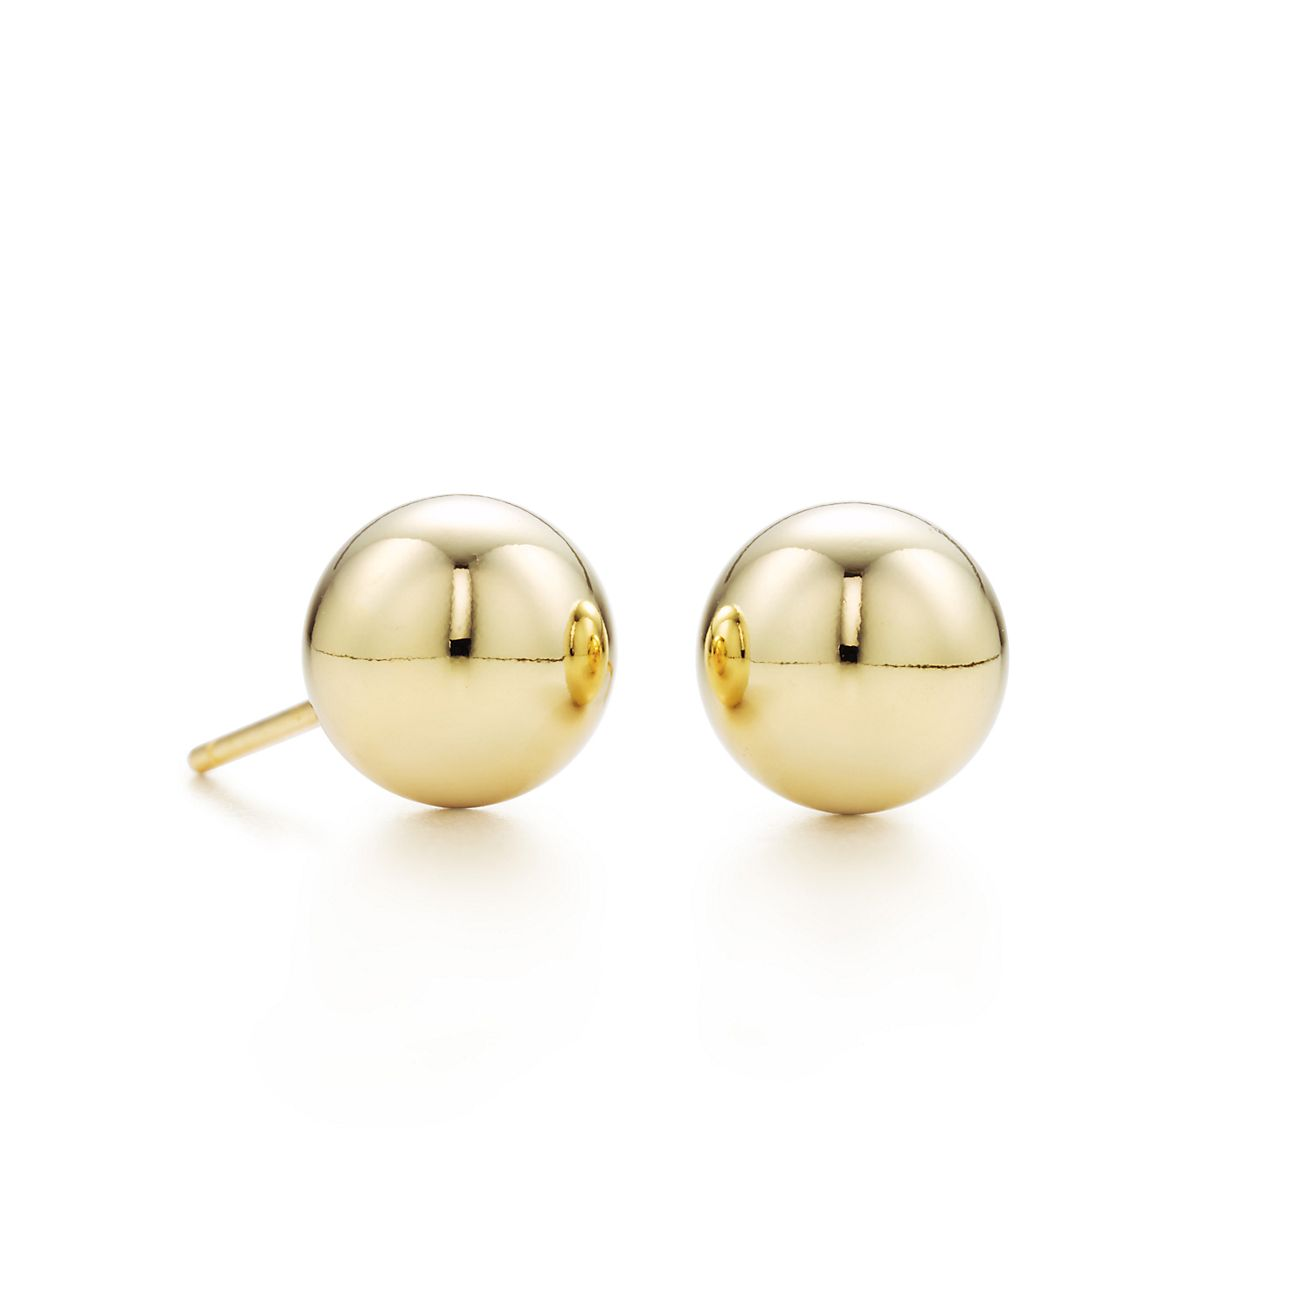 crossover david diamonds yurman zoom in sale gold earrings stud with